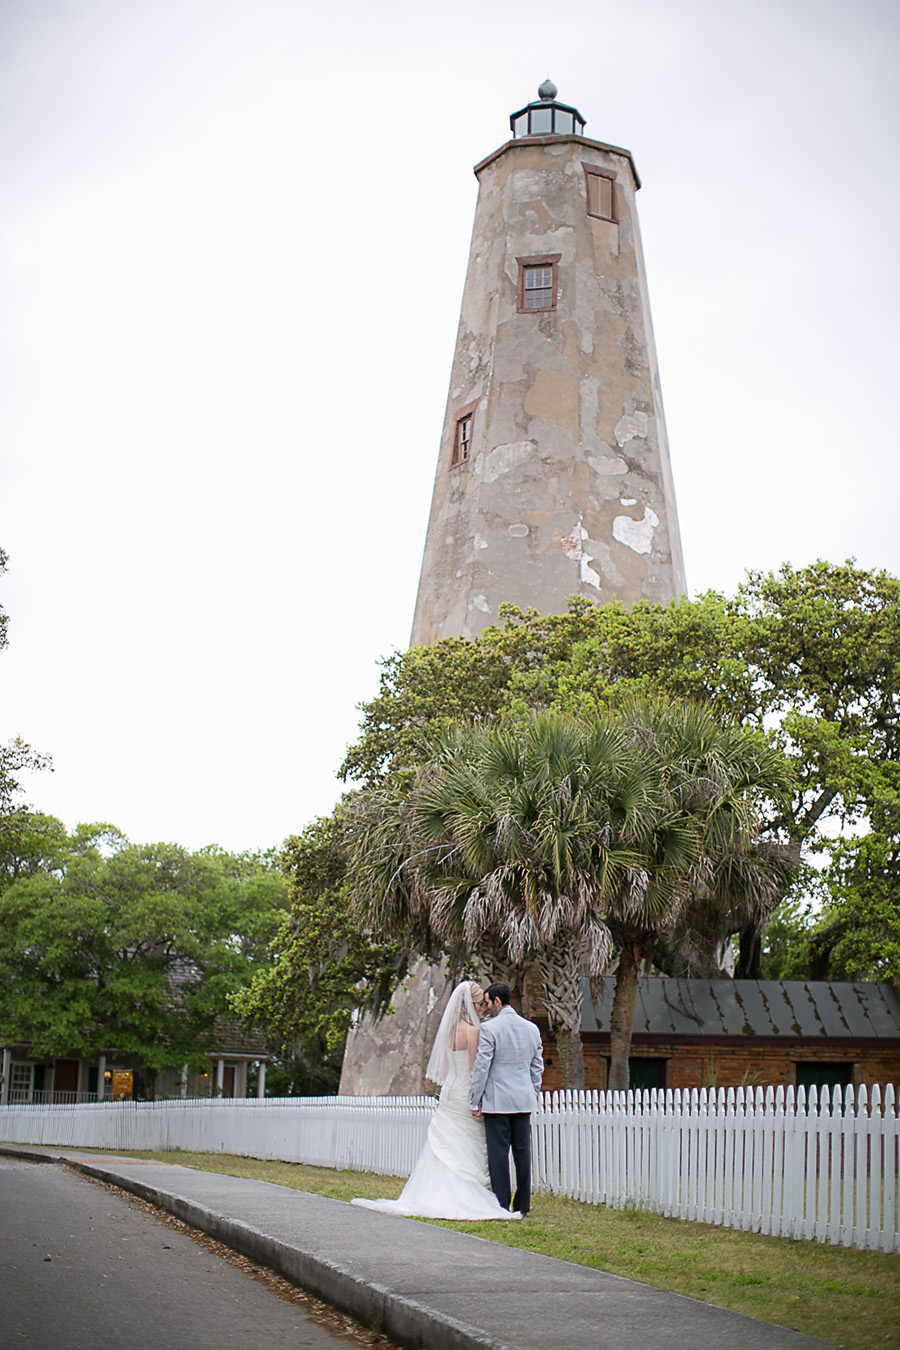 The Bride and Groom - Portraits - 1 - Bald Head Island Wedding - Photo by Eric Boneske